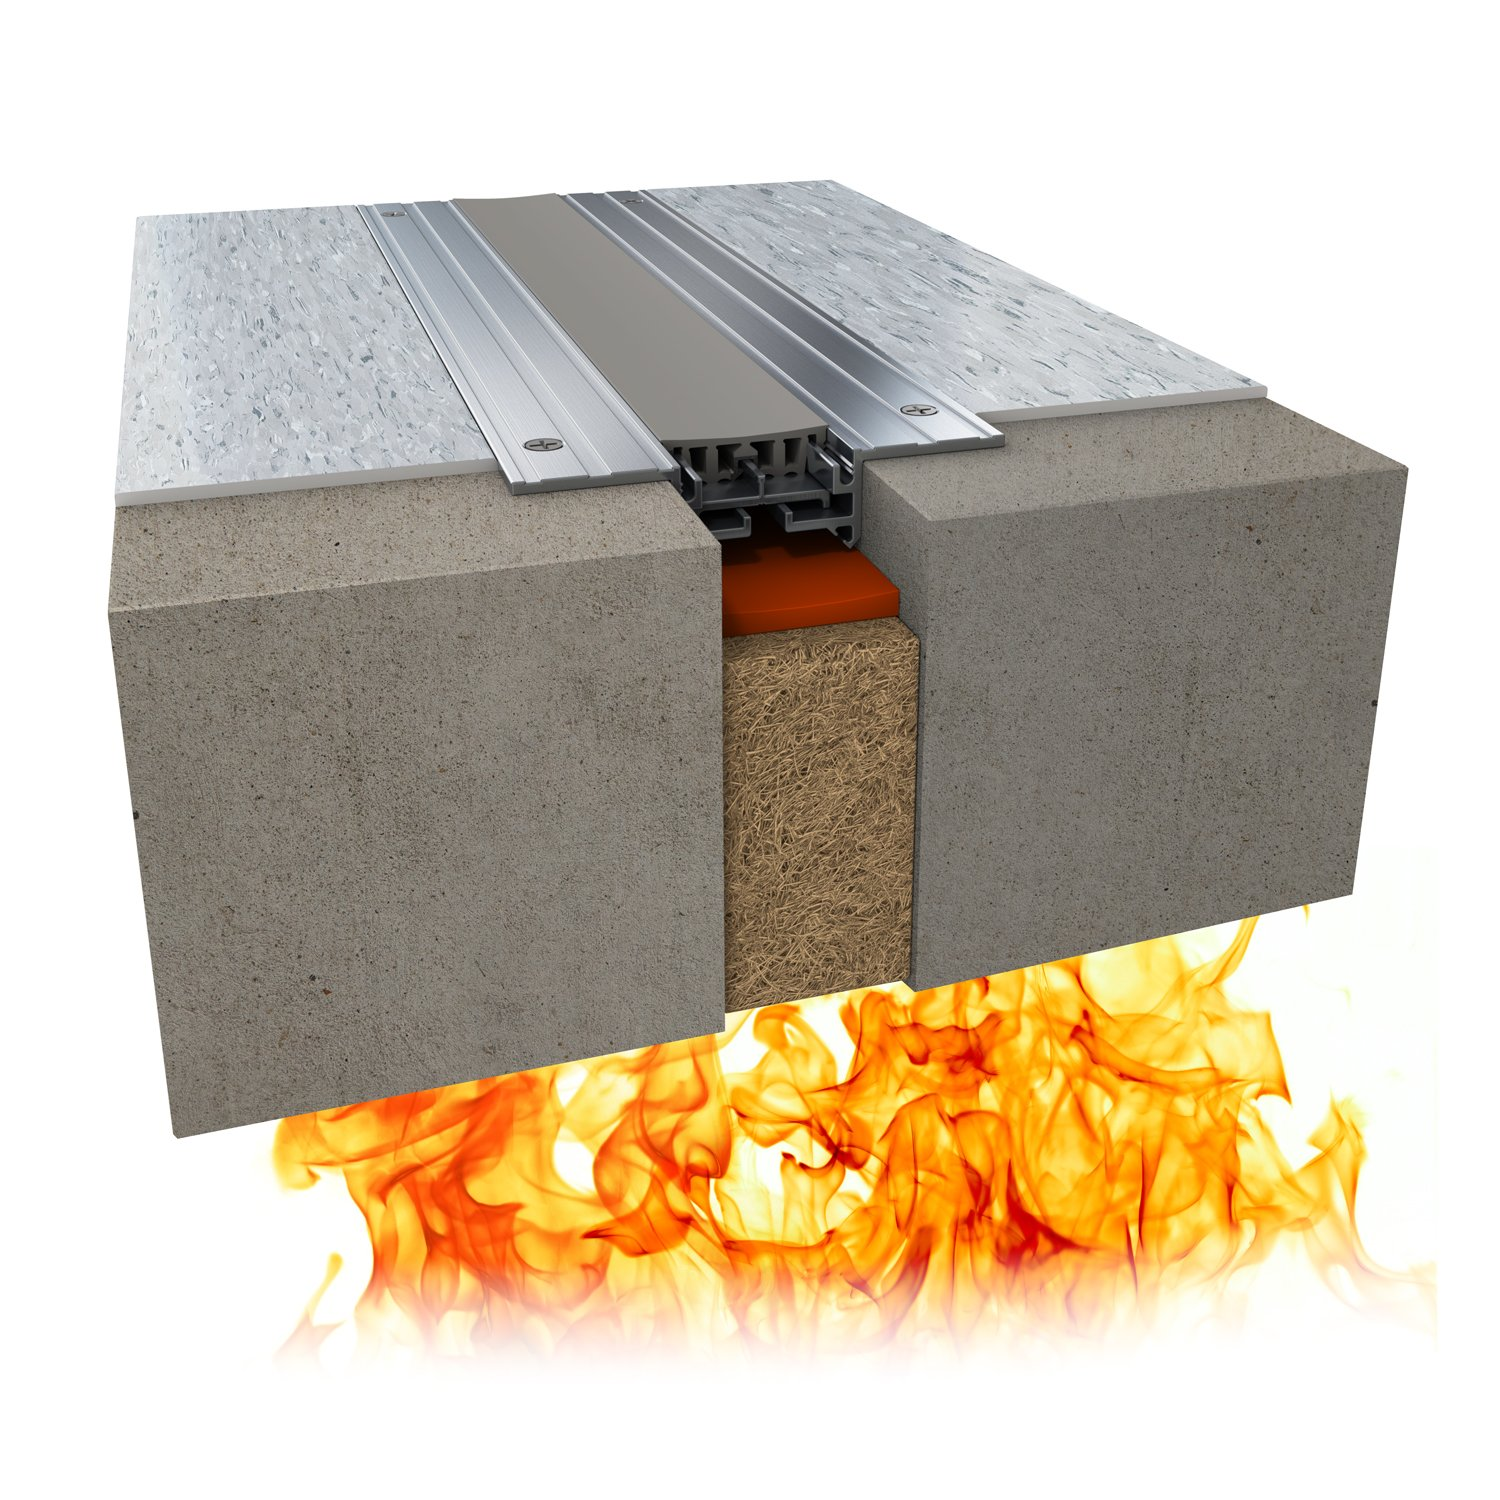 925 Series Mineral Wool and Sealant Fire Barrier